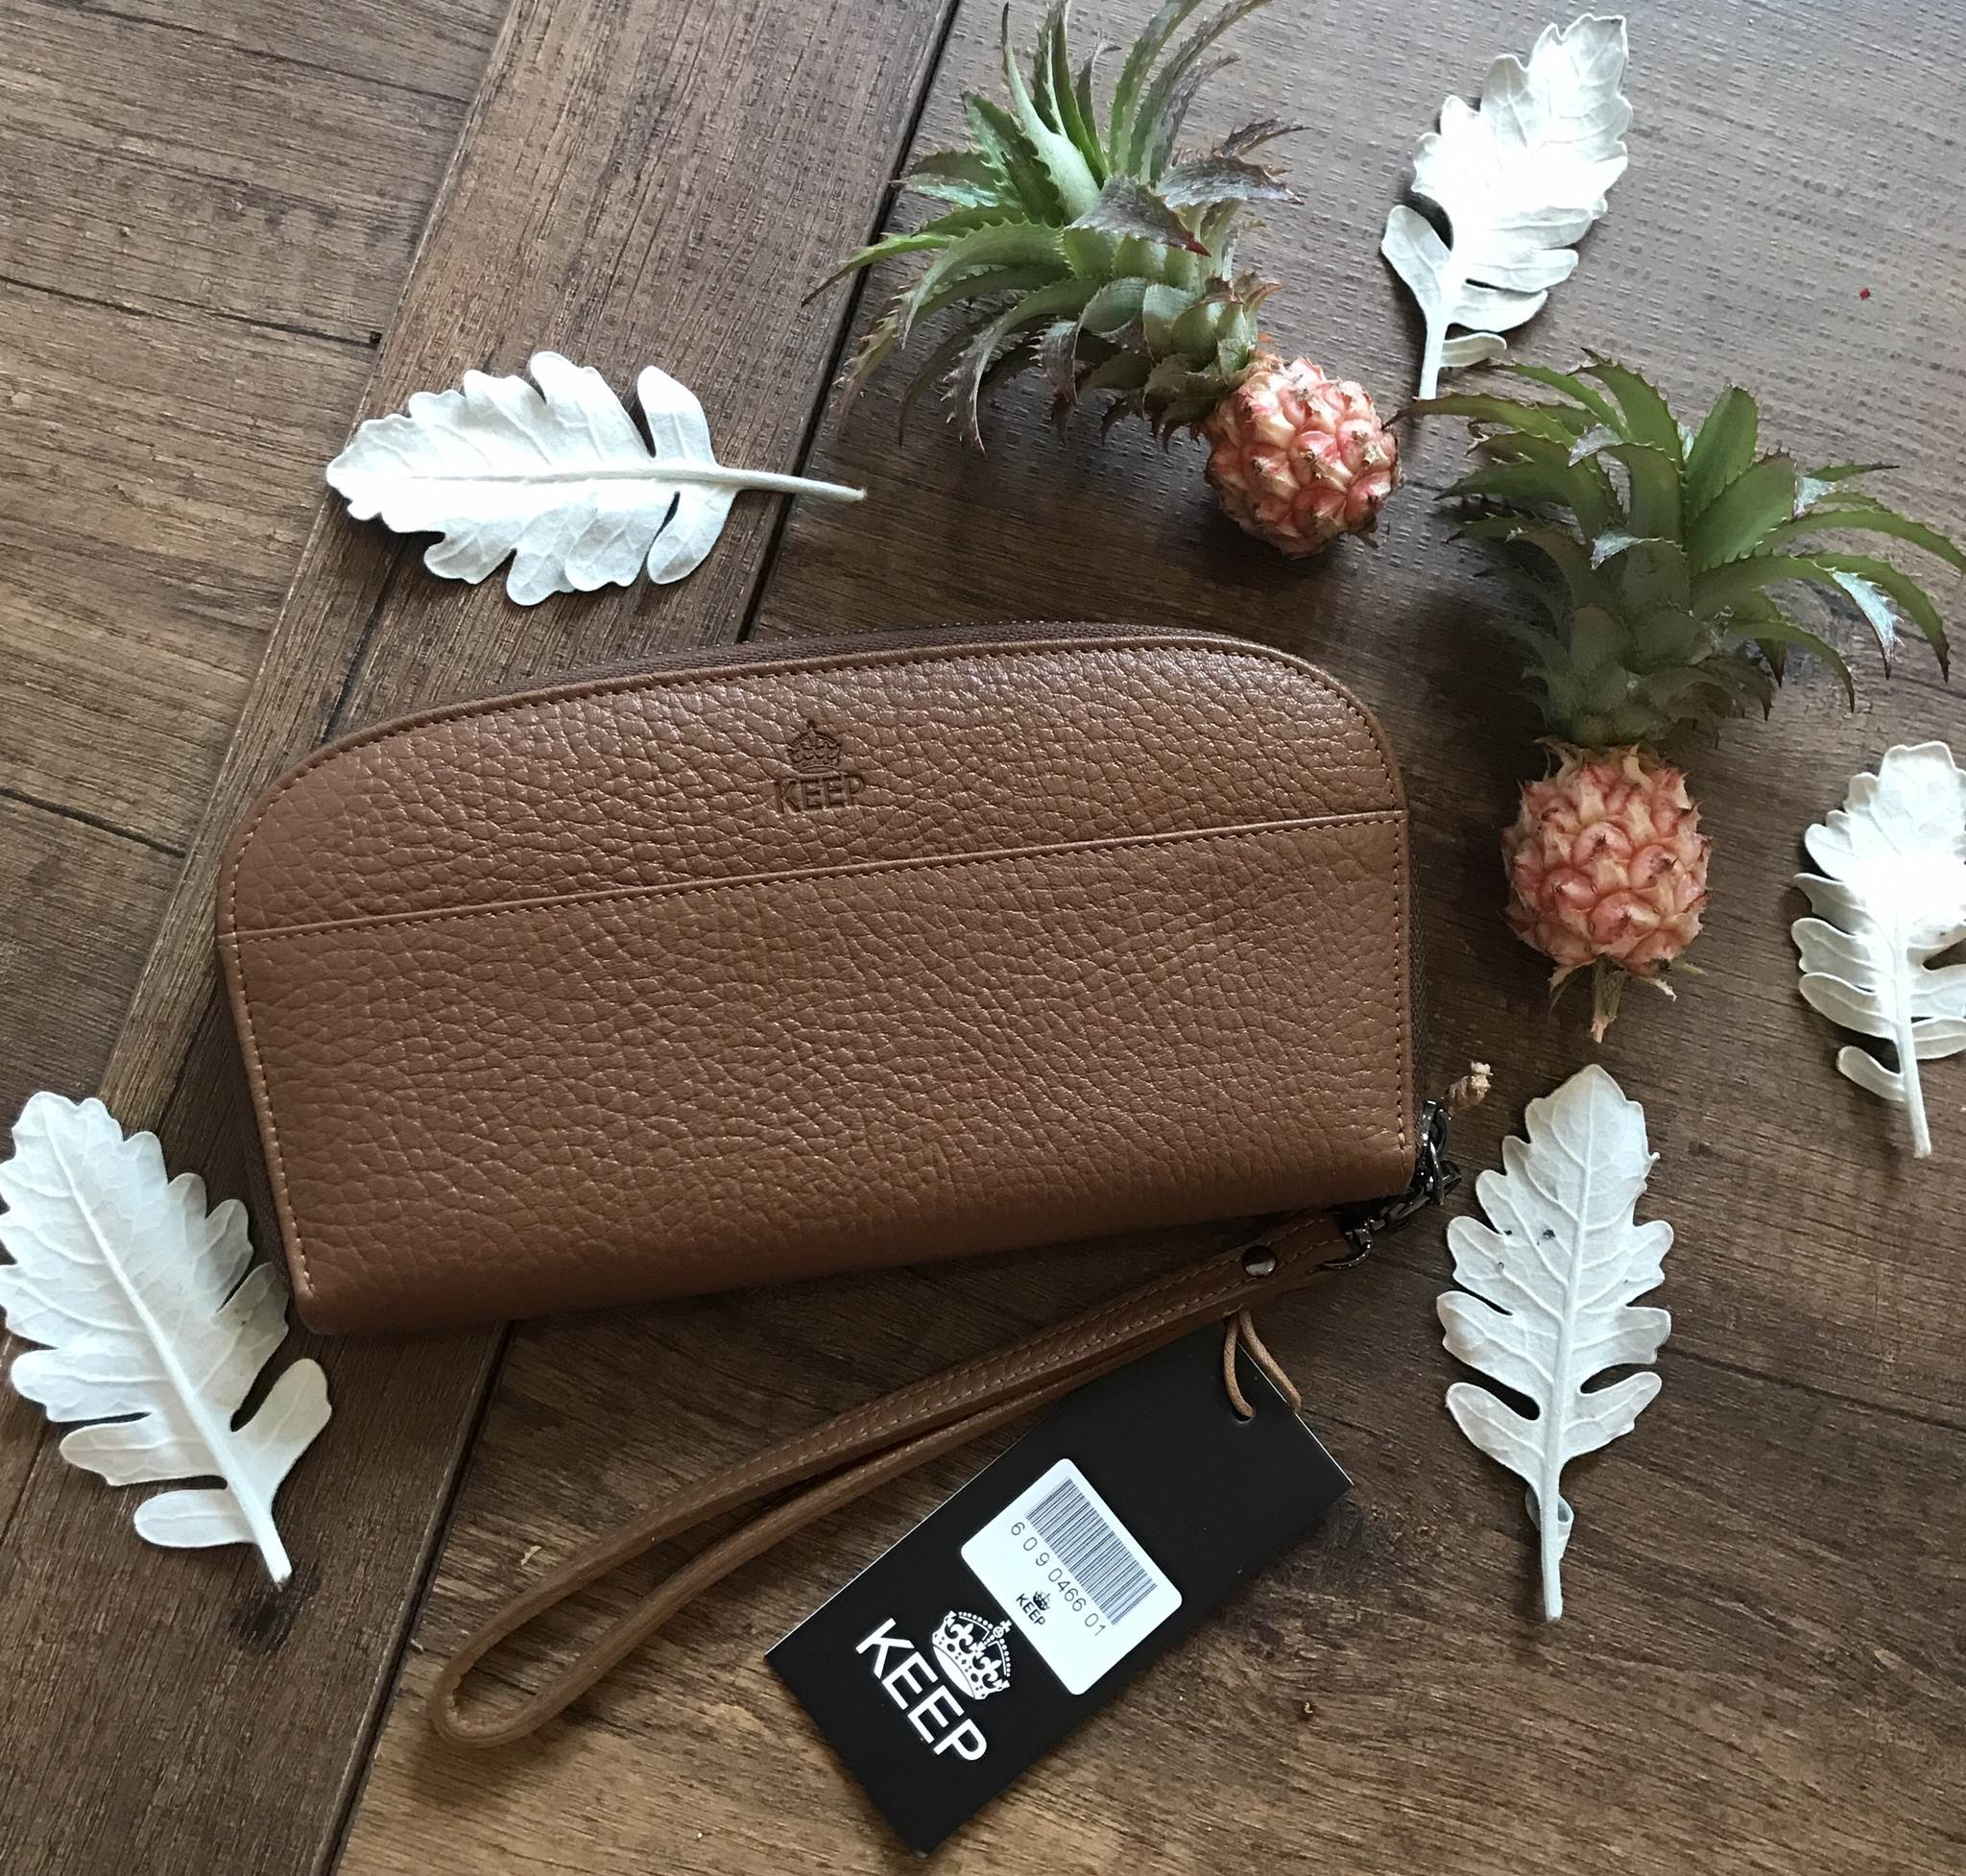 KEEP Gissy zipper Genuie Leather Wallet 2017 สีน้ำตาล